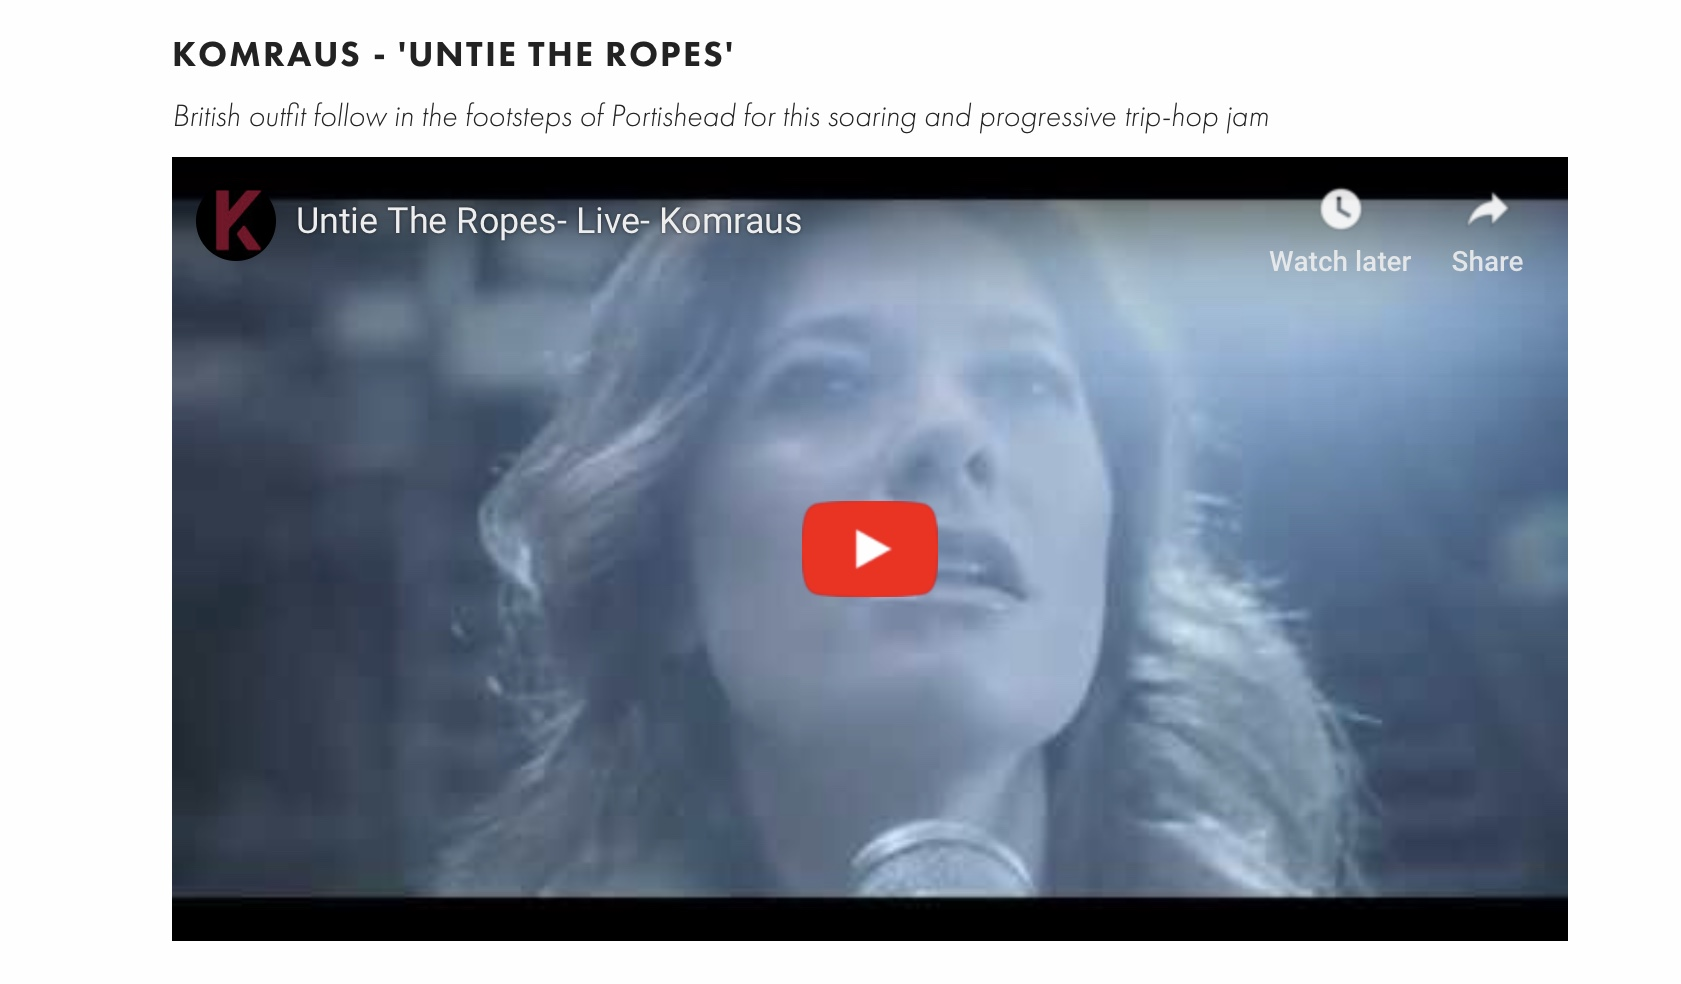 MYSTIC SONS Mag featuring 'Untie the ropes' song and video -